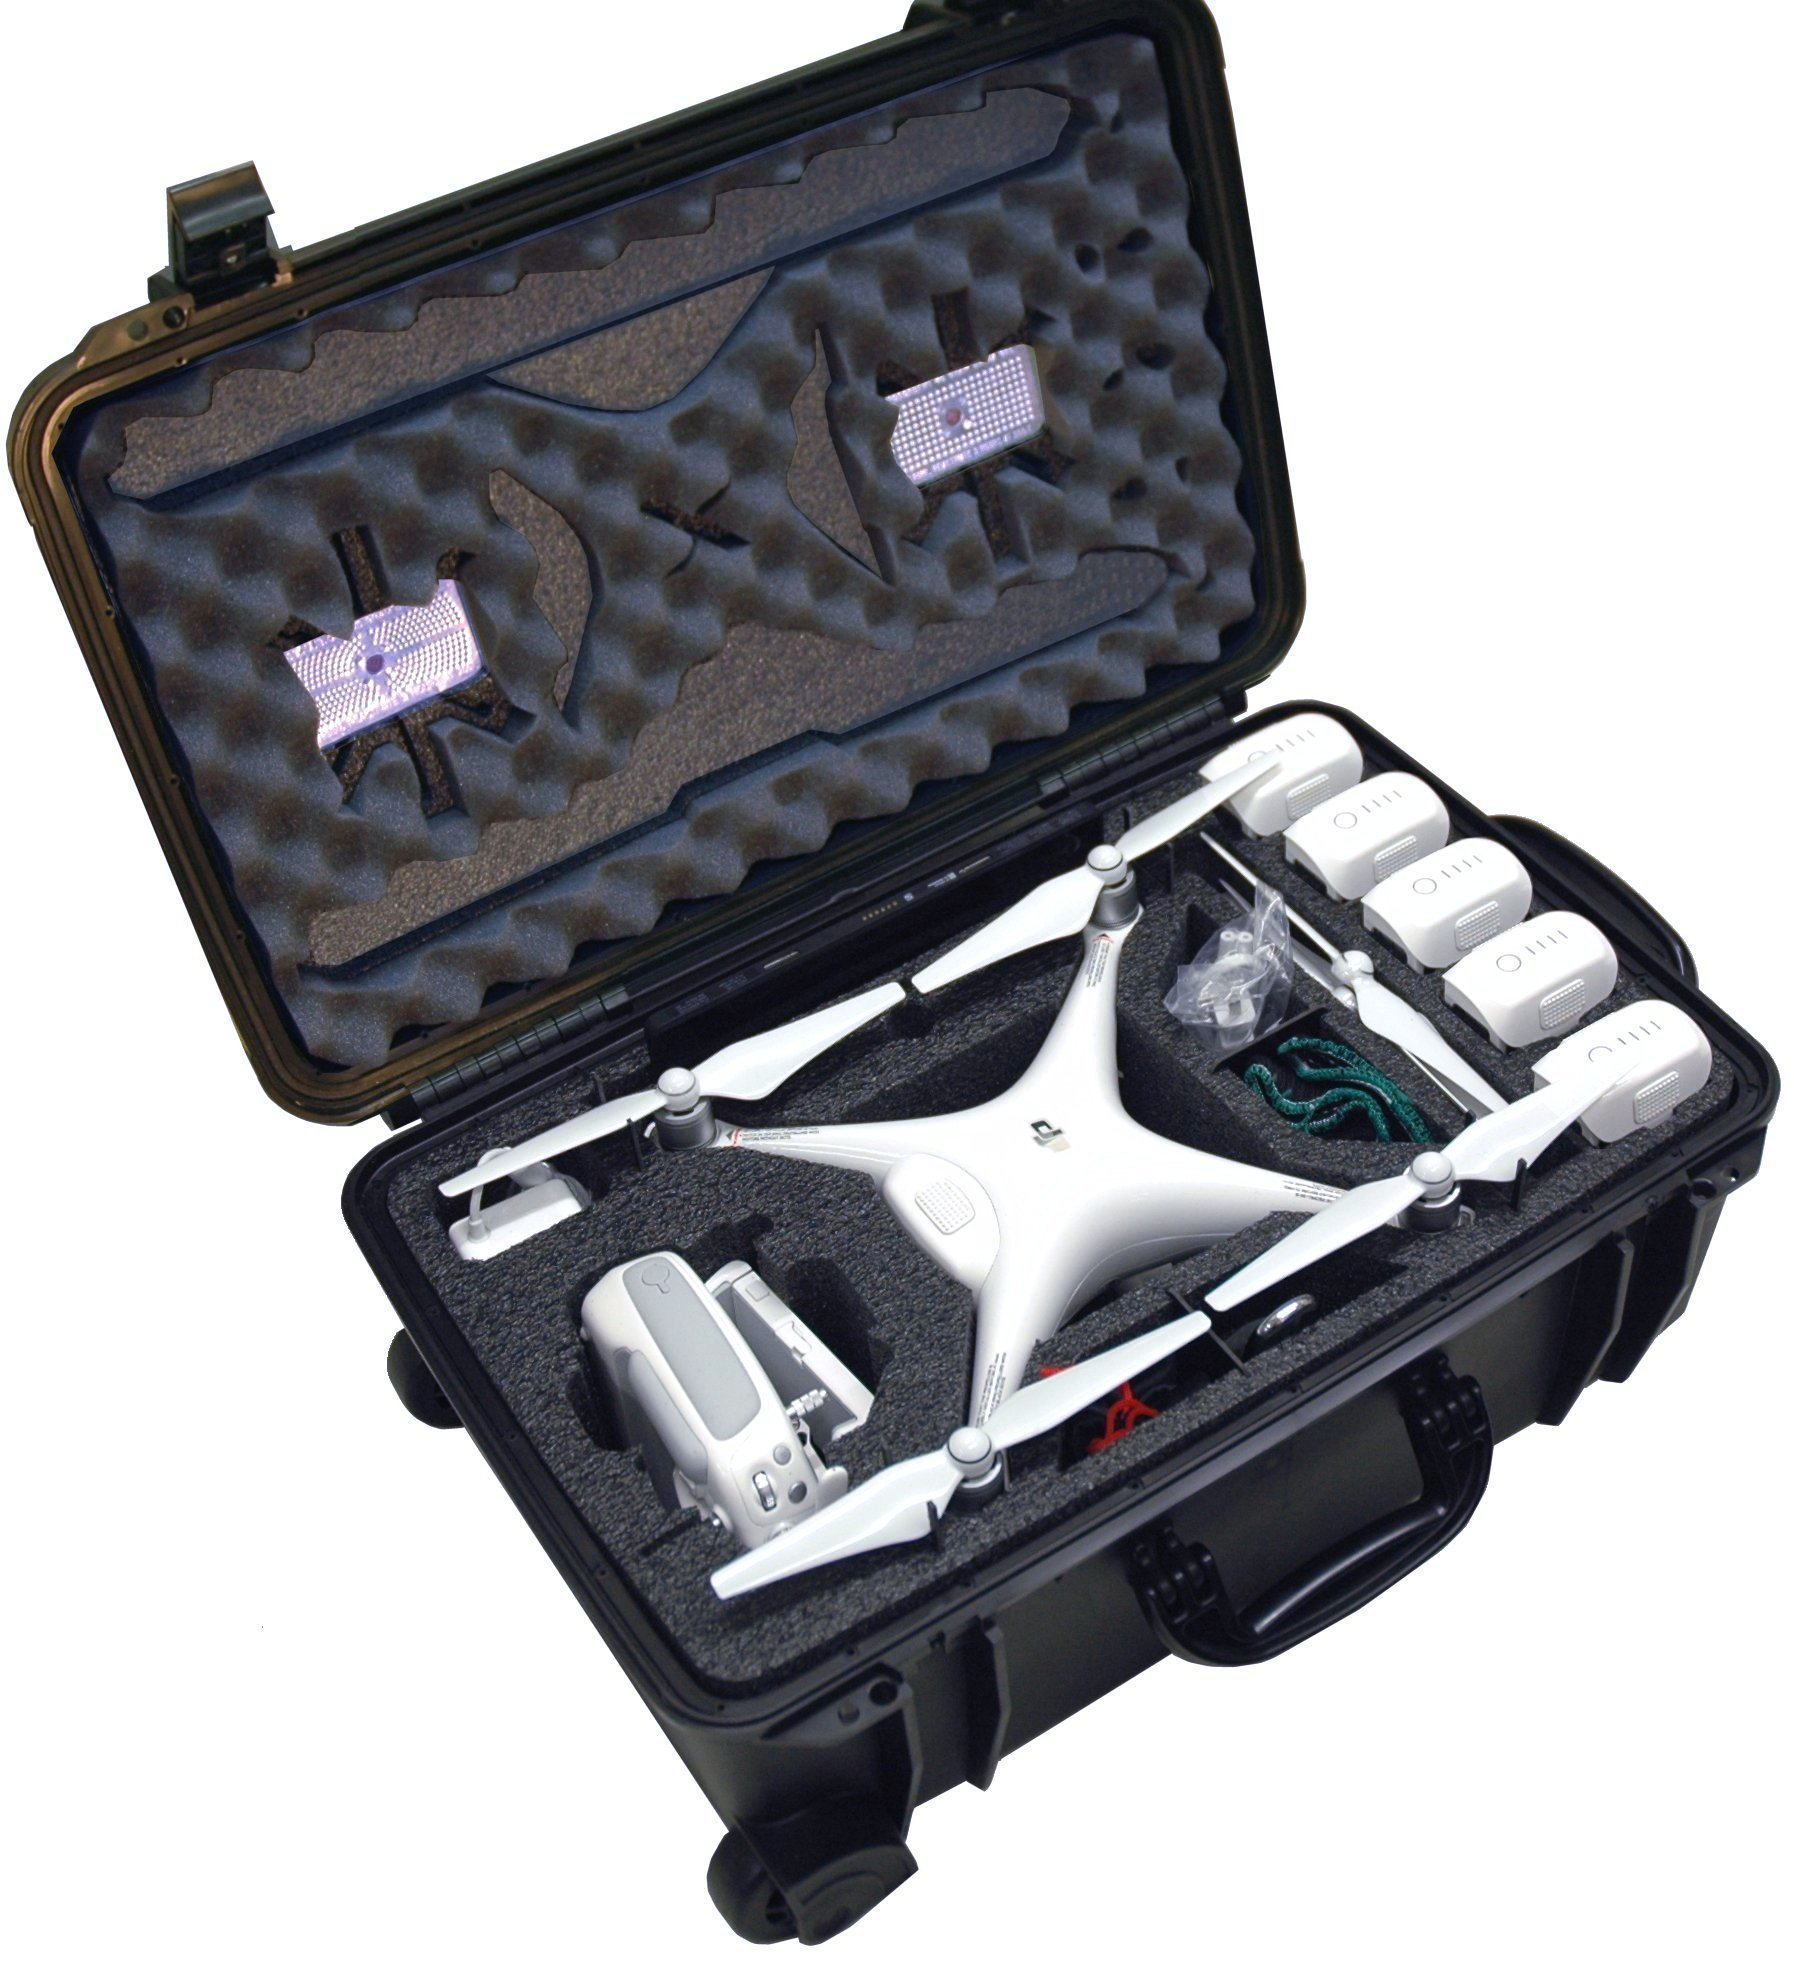 Case Club Waterproof DJI Phantom 4 Drone Wheeled Case with Silica Gel (Propellers On) by Case Club